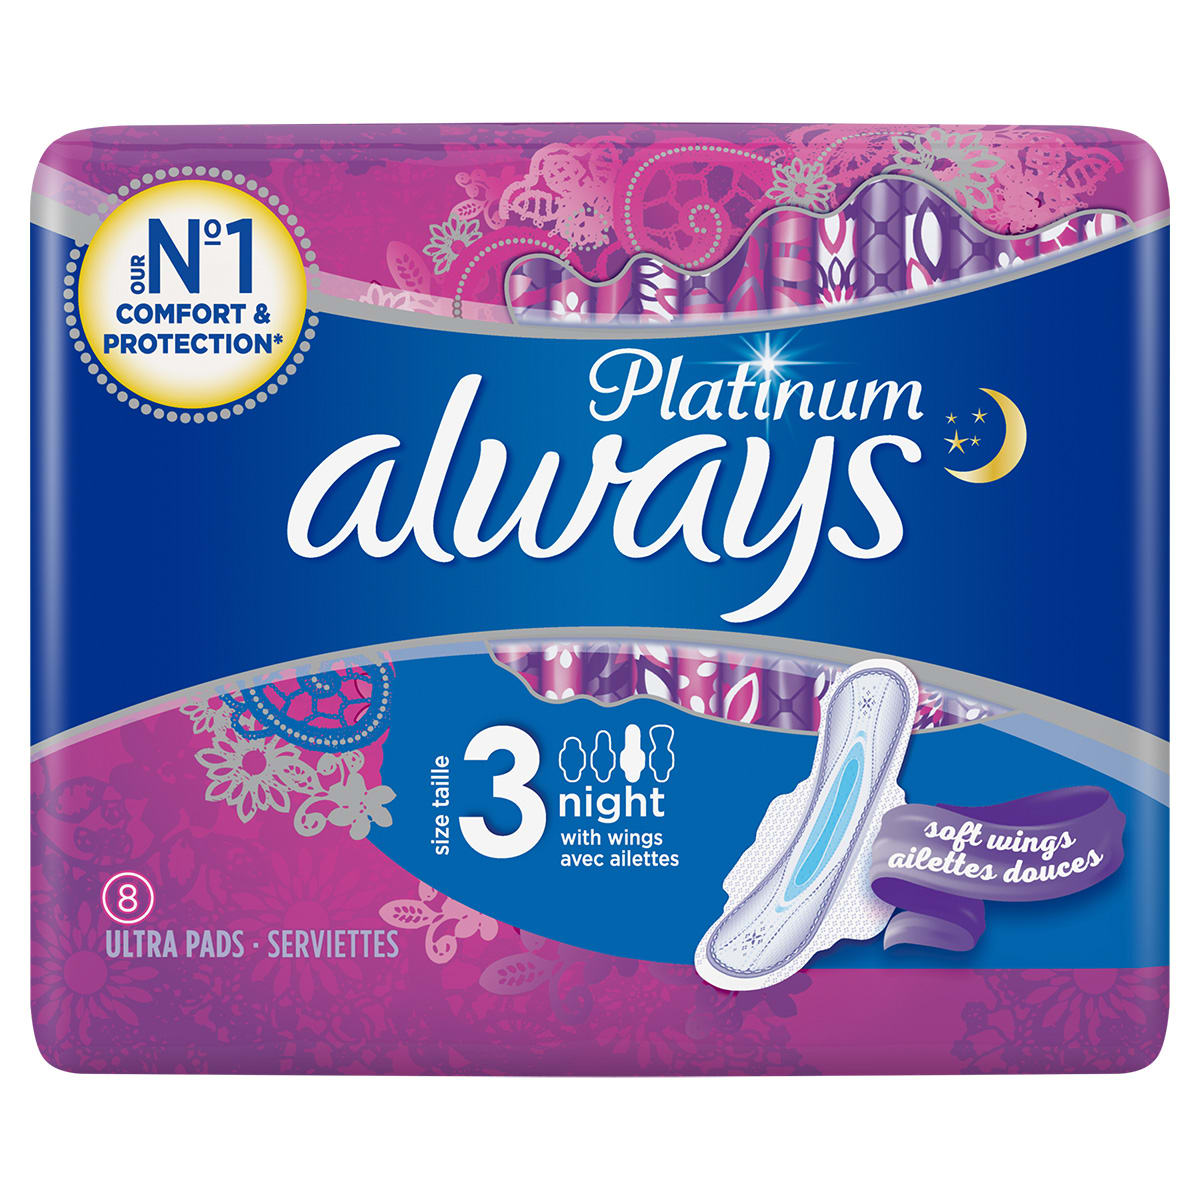 ALWAYS Platinum Night Sanitary Towels with Wings